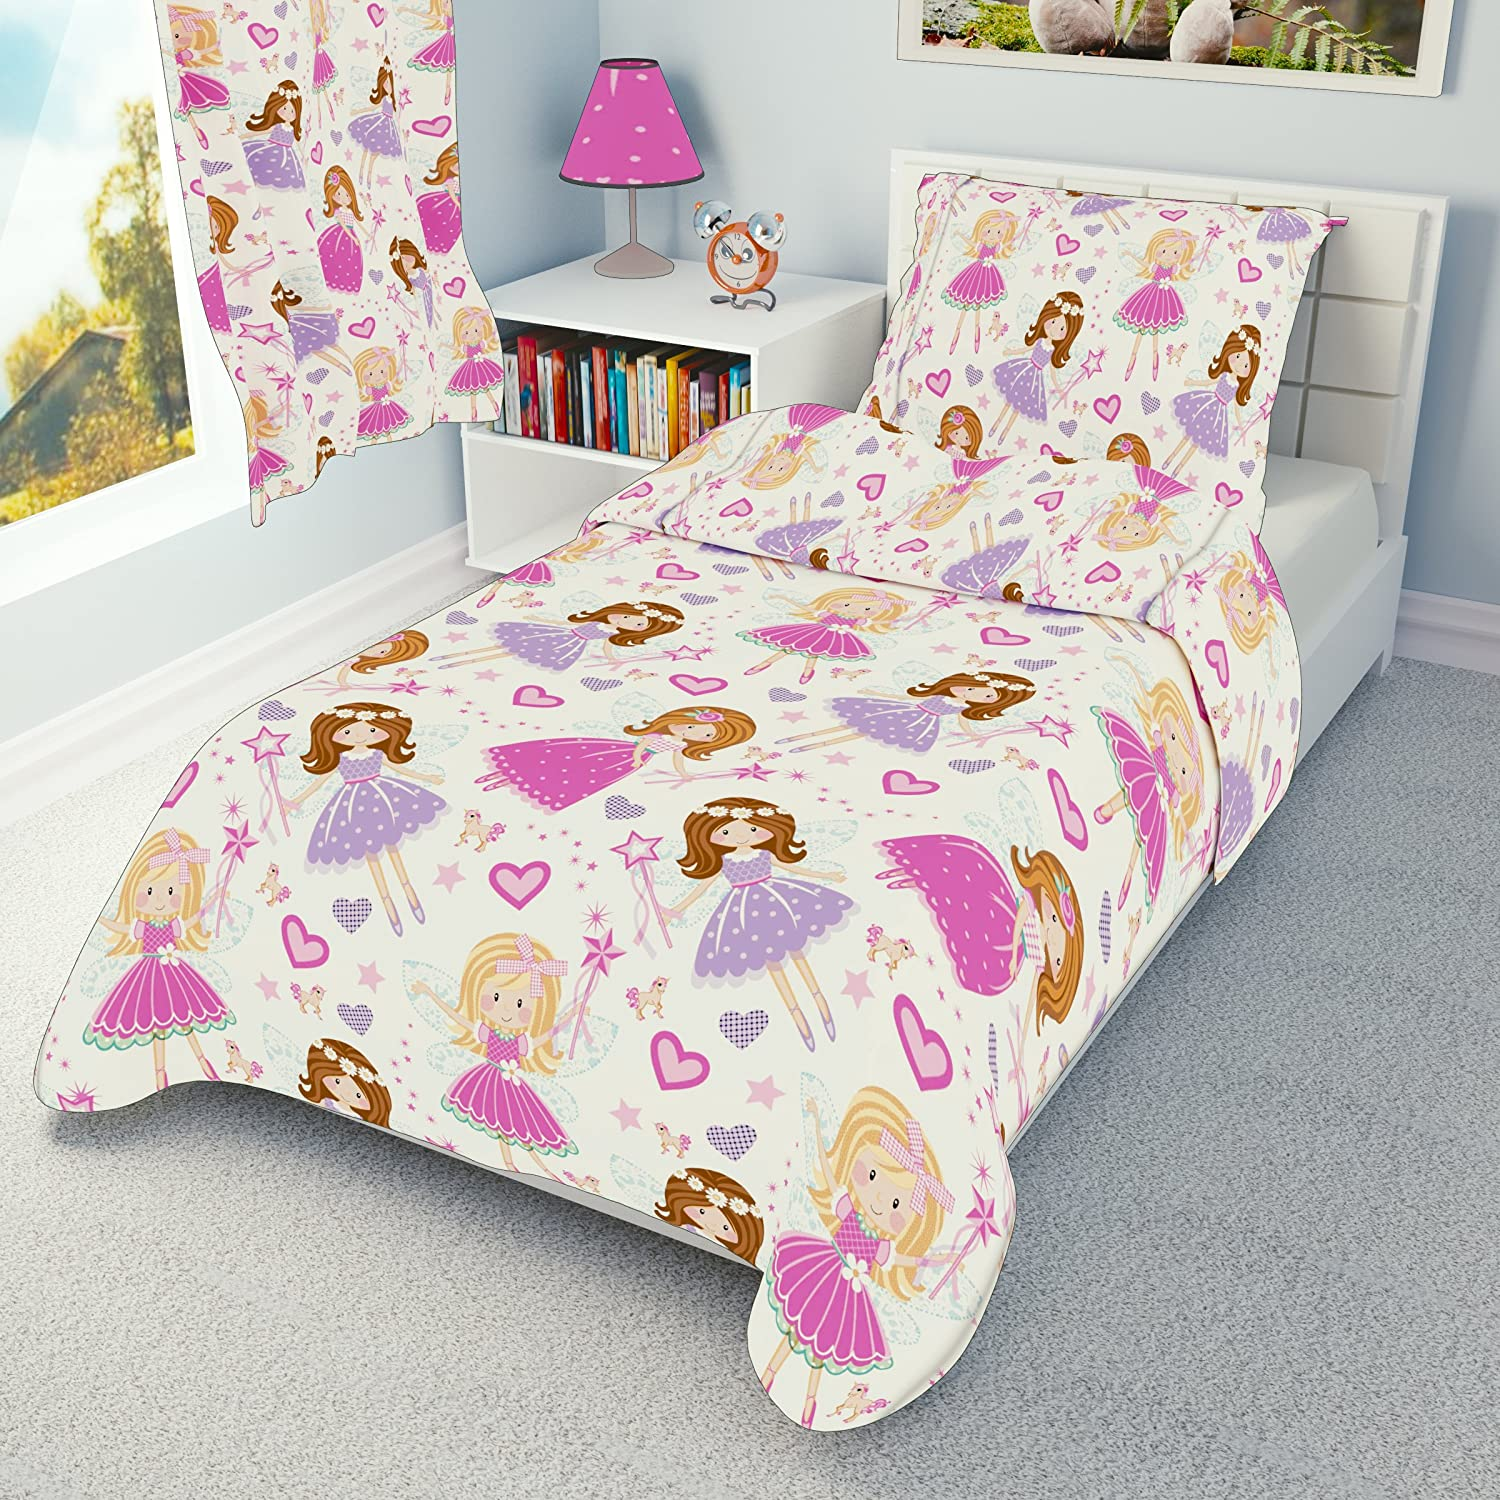 Babies Island IKEA Cot Bedding Duvet Cover Pillowcase 110 x 125 cm - many designs available (Fairies With Unicorns) Babies-Island